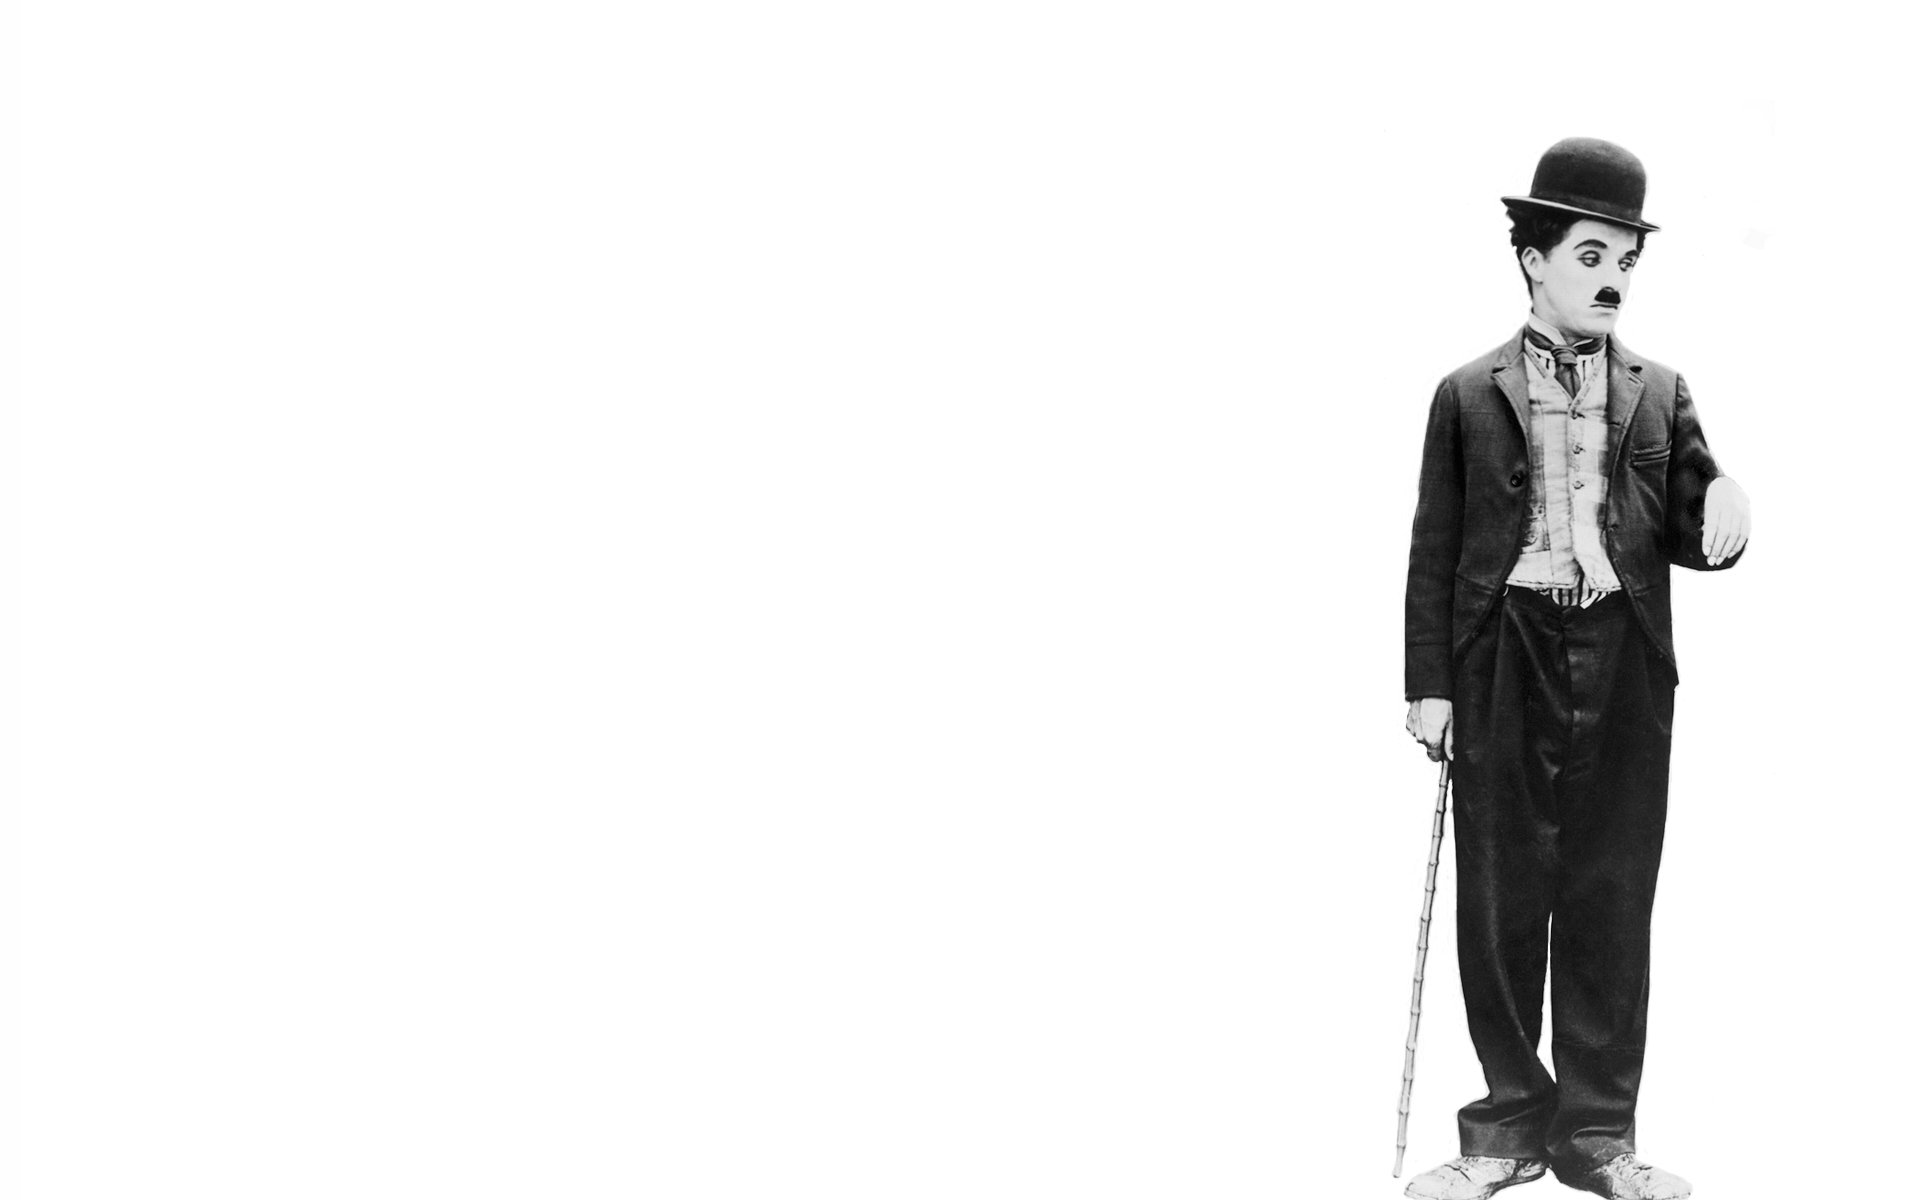 21 charlie chaplin hd wallpapers background images wallpaper abyss charlie chaplin hd wallpaper background image id621971 thecheapjerseys Images